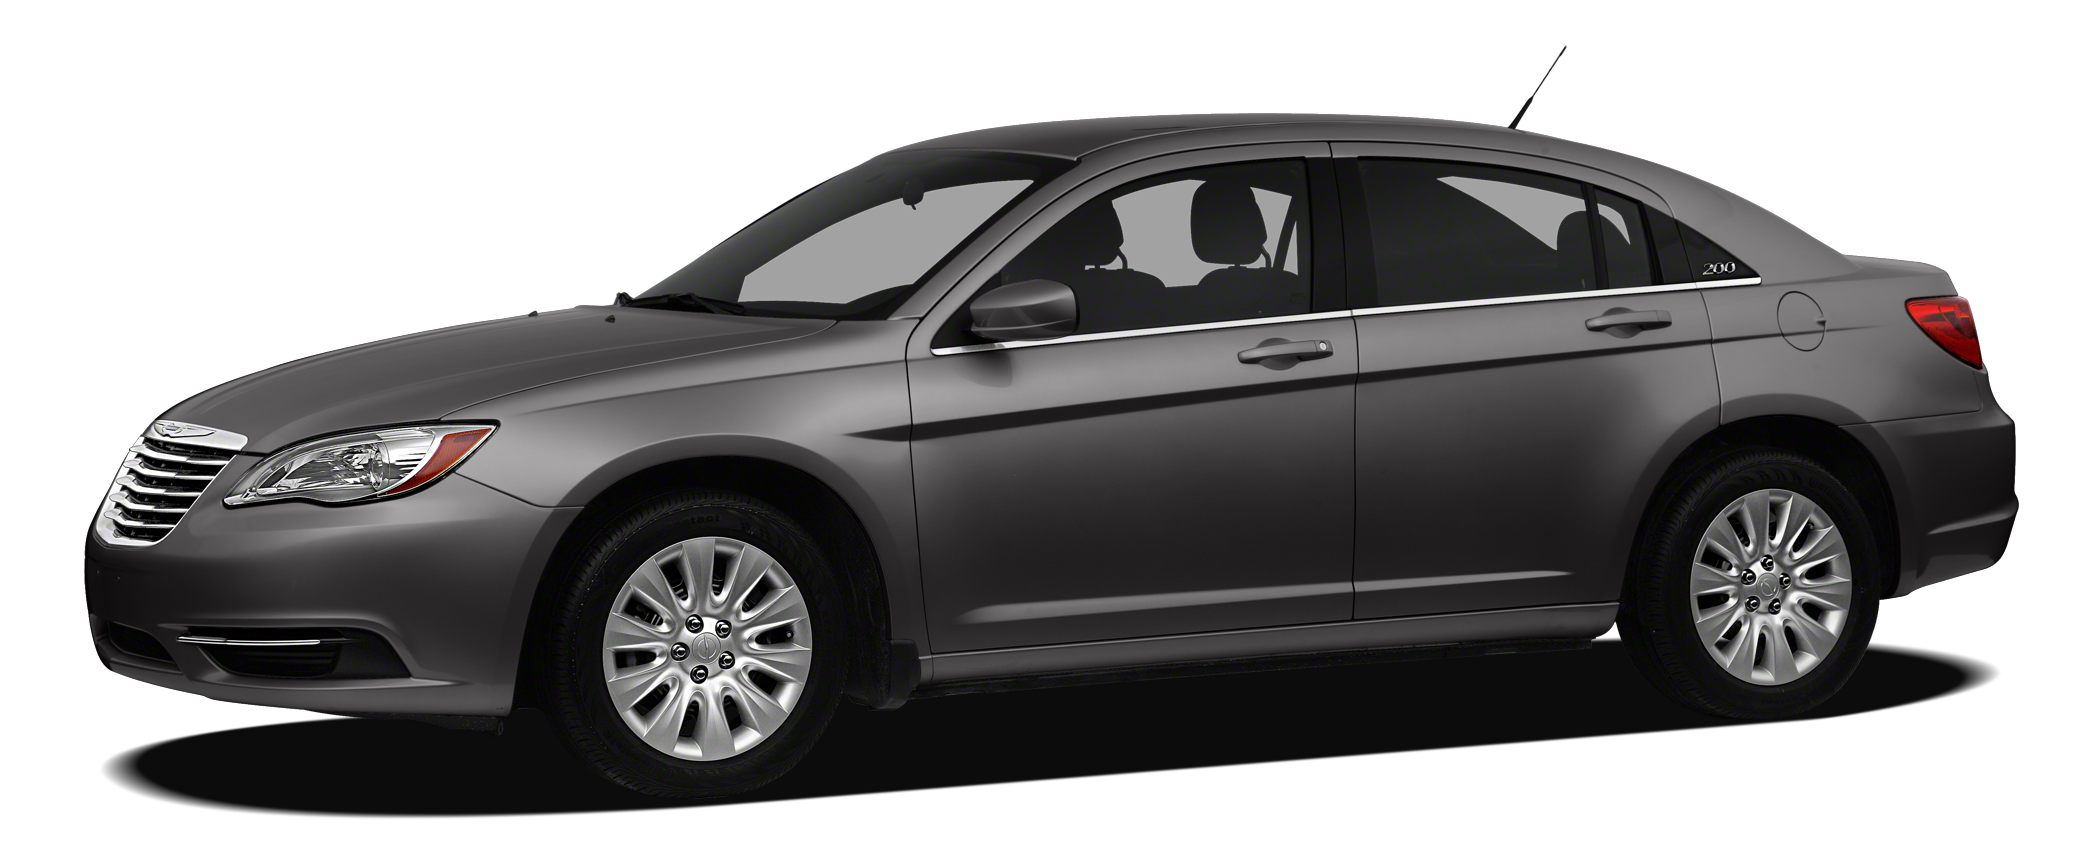 2012 Chrysler 200 Limited Lifetime Engine Warranty at NO CHARGE on all pre-owned vehicles Courtes